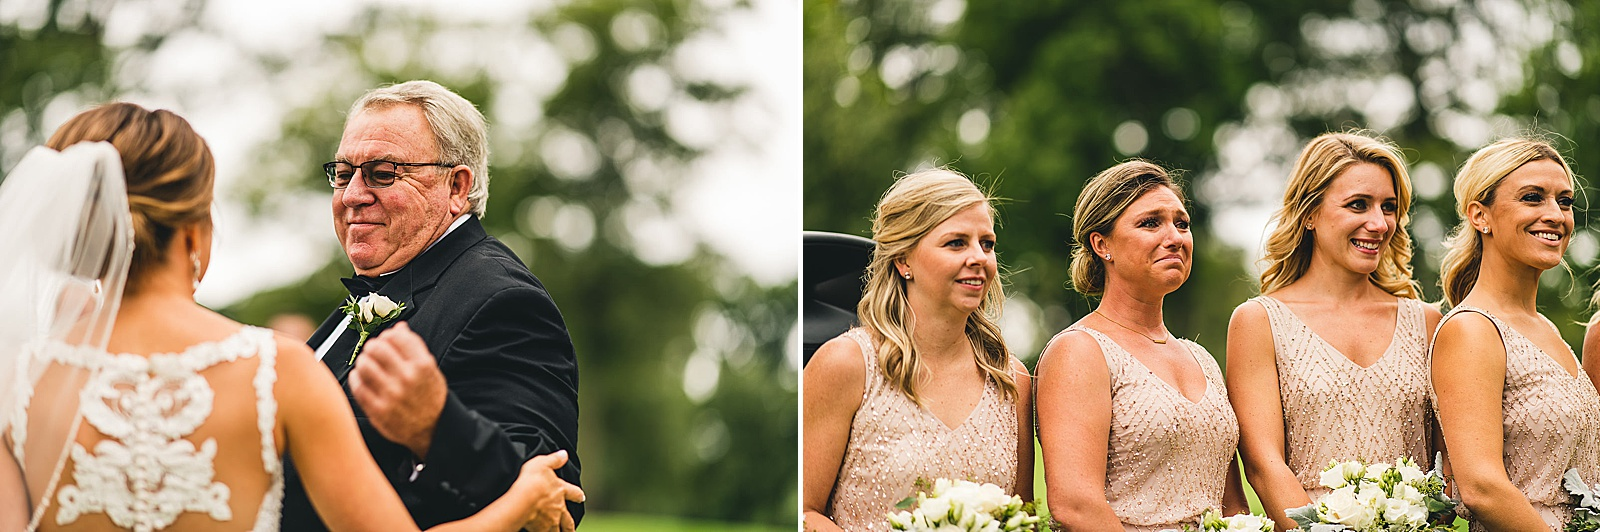 36 great moments photography wdding - Medinah Country Club Wedding Photos // Courtney + Tim